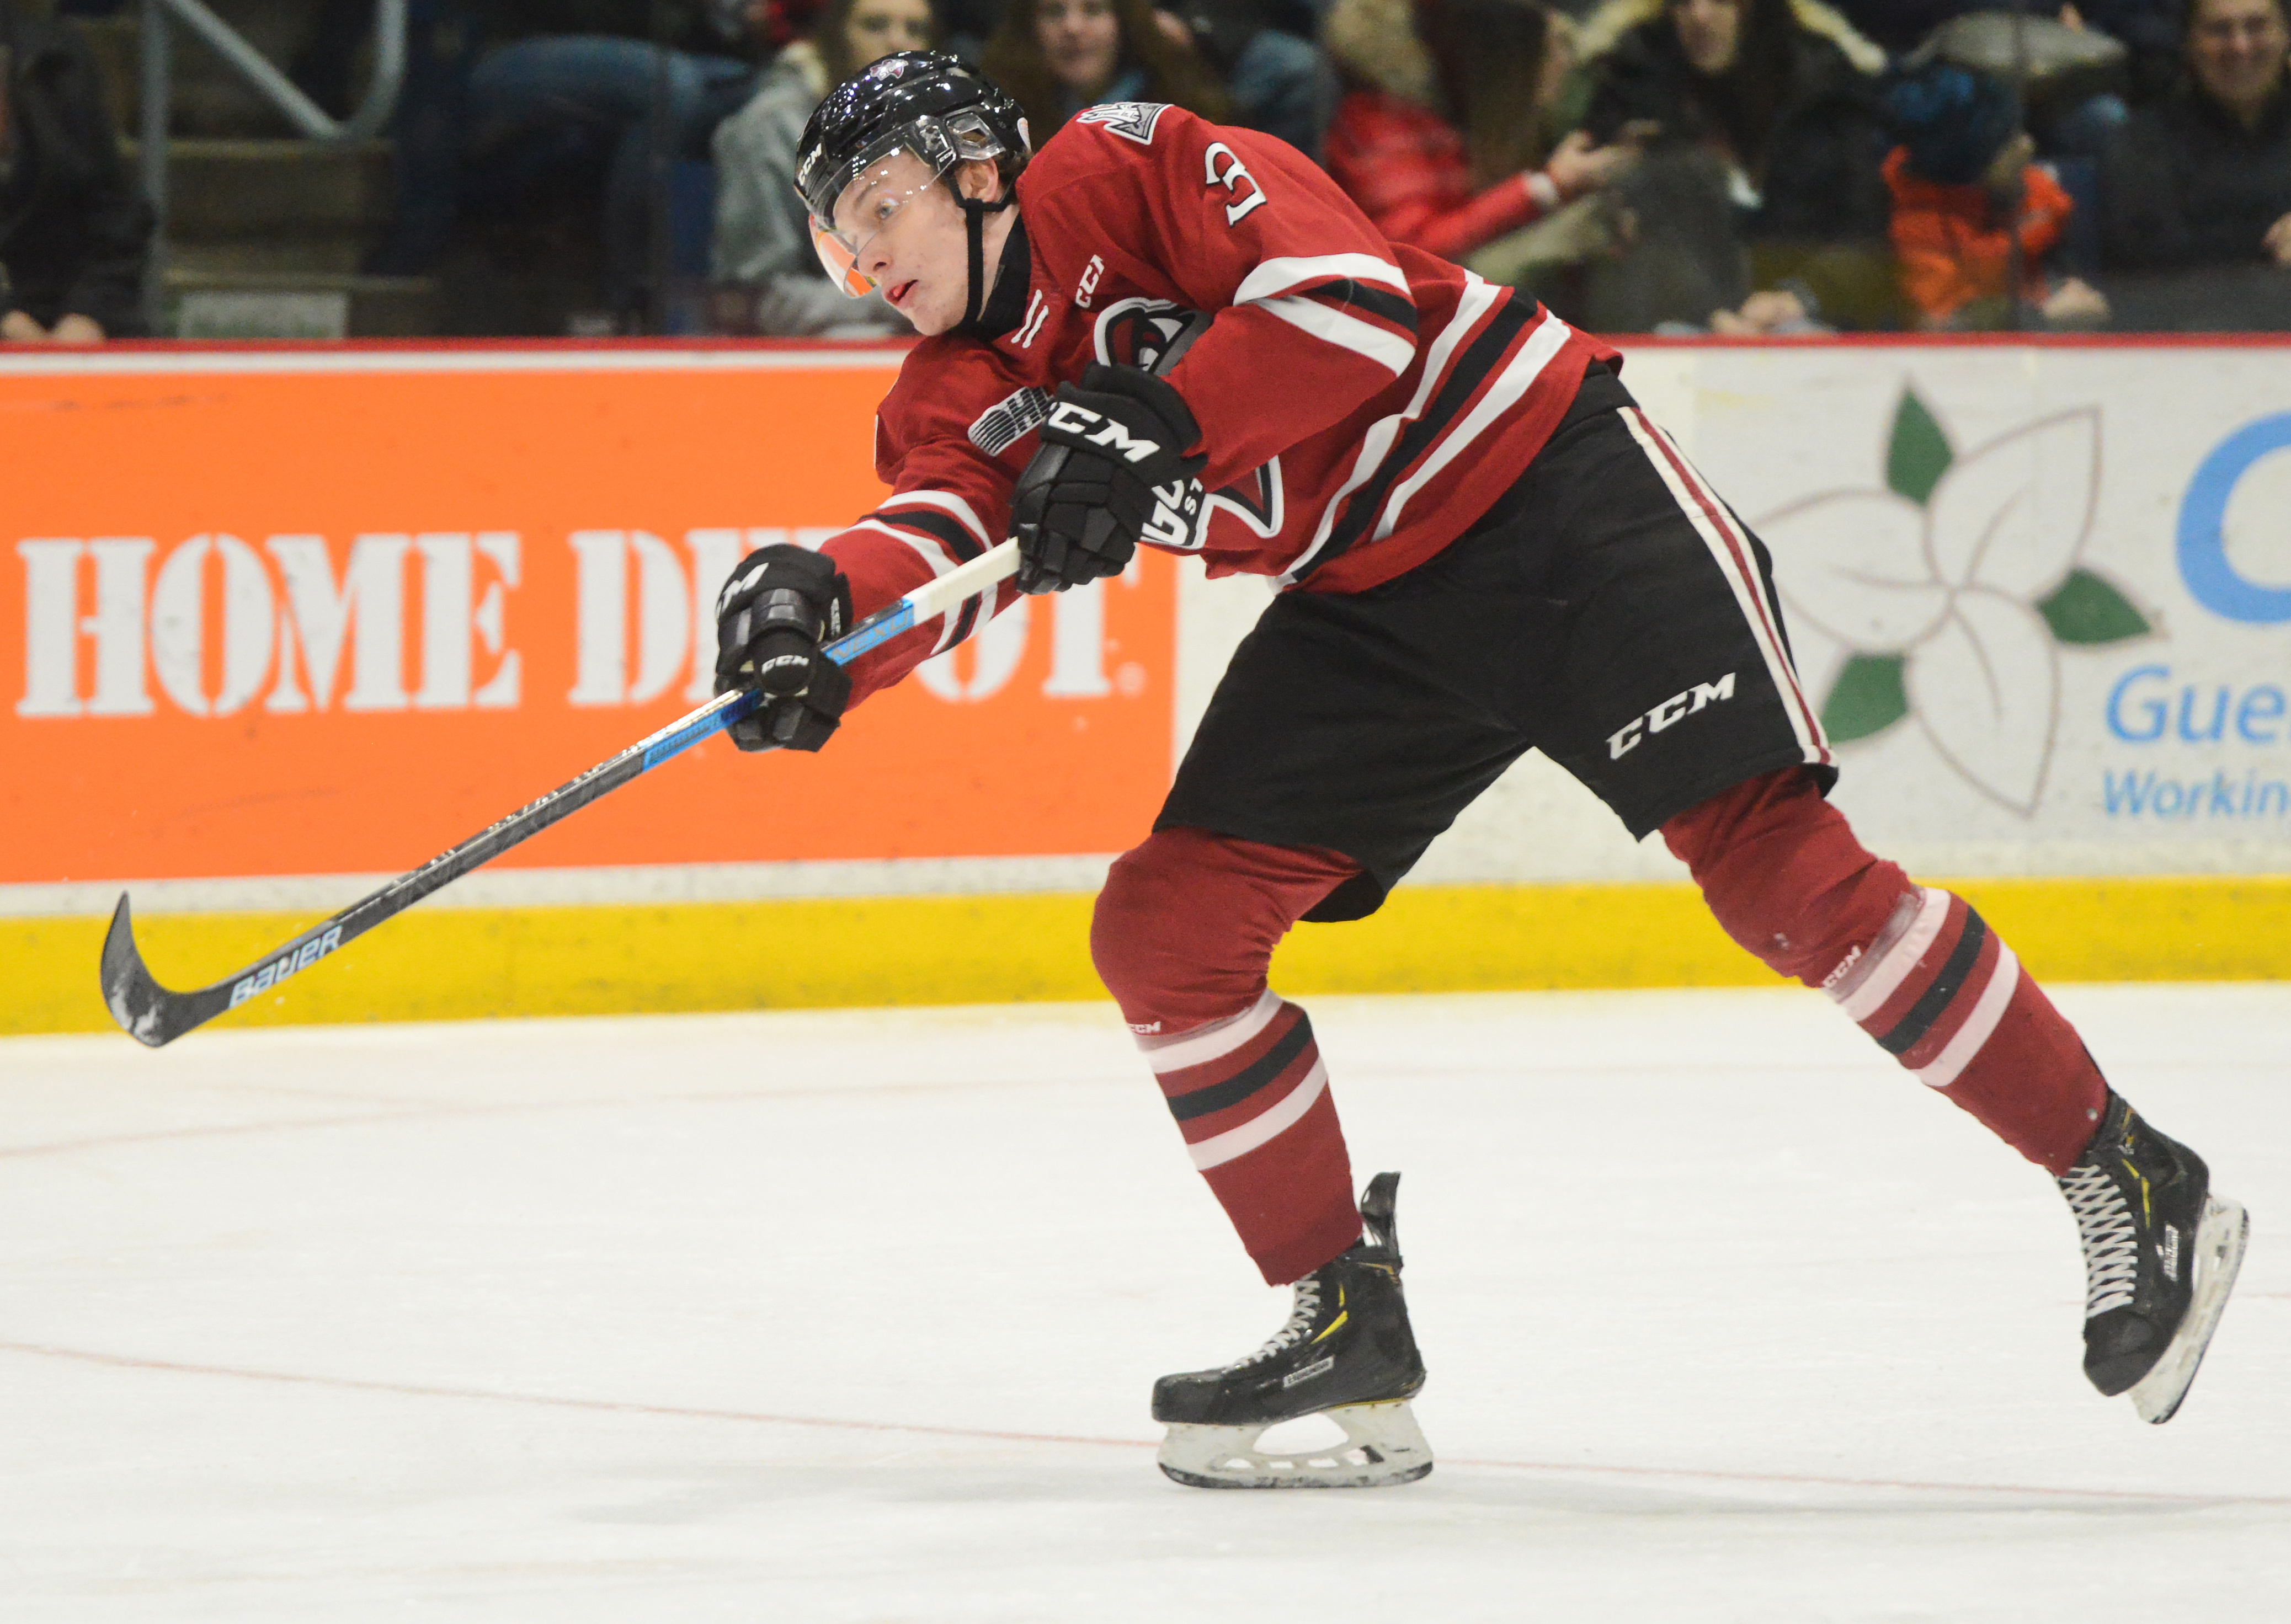 Hockey tour stops in Guelph for new Storm defenceman